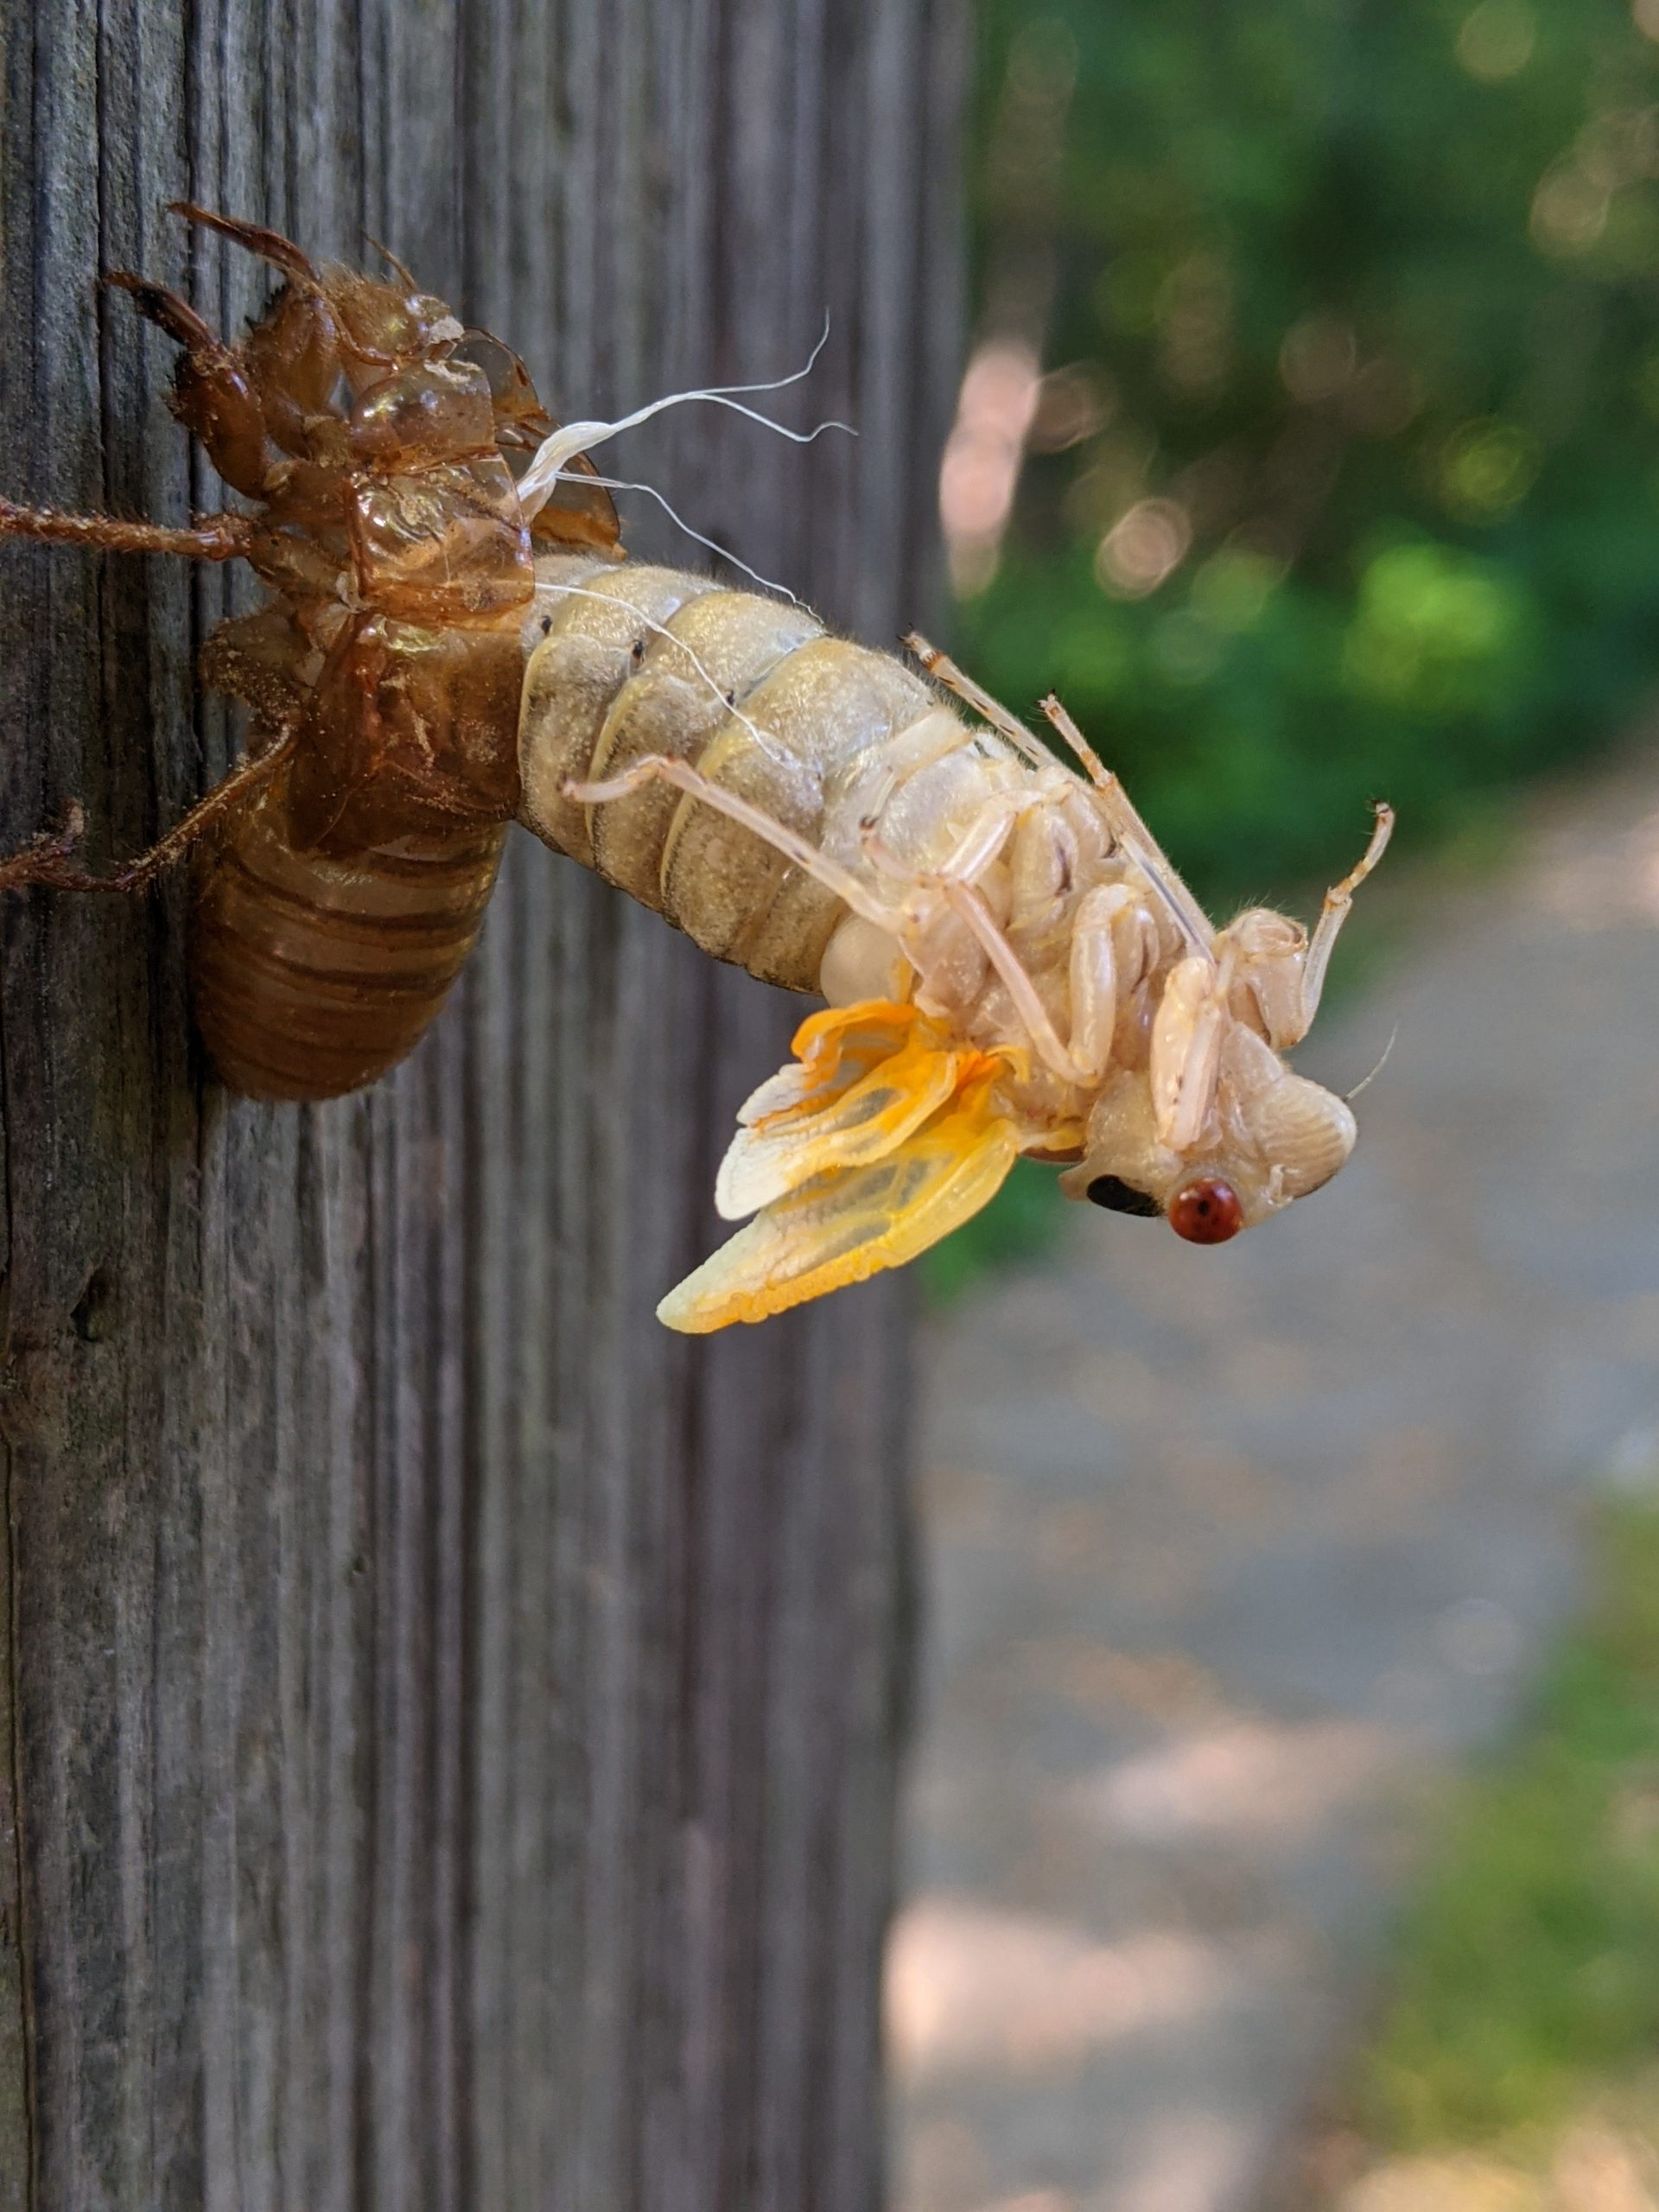 Immature adult periodical cicada emerging from nymph skin.